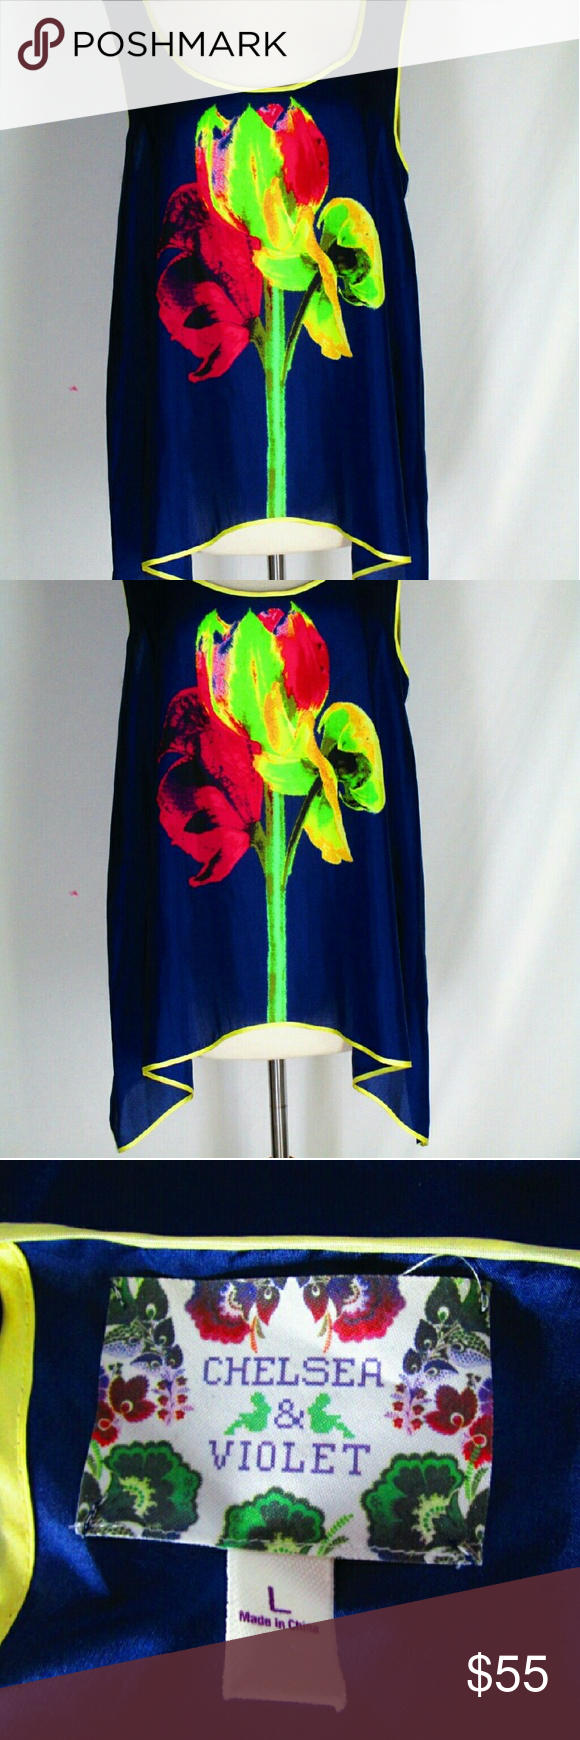 """NWOT Chelsea & Violet  Flower Silk top L Amazing silk top with bright graphic flower. Chelsea & Violet Navy Silk Shirt Top Blouse. Iris Design. Navy with green, red, yellow iris design.100% Silk. SIZE  Large. Bust - 38"""" Length - 26"""" (top of shoulder to hem) New without tags. Ties in back at neck. High/low cut on sides. Trapeze style. Very pretty and flattering. Chelsea & Violet Tops Blouses"""